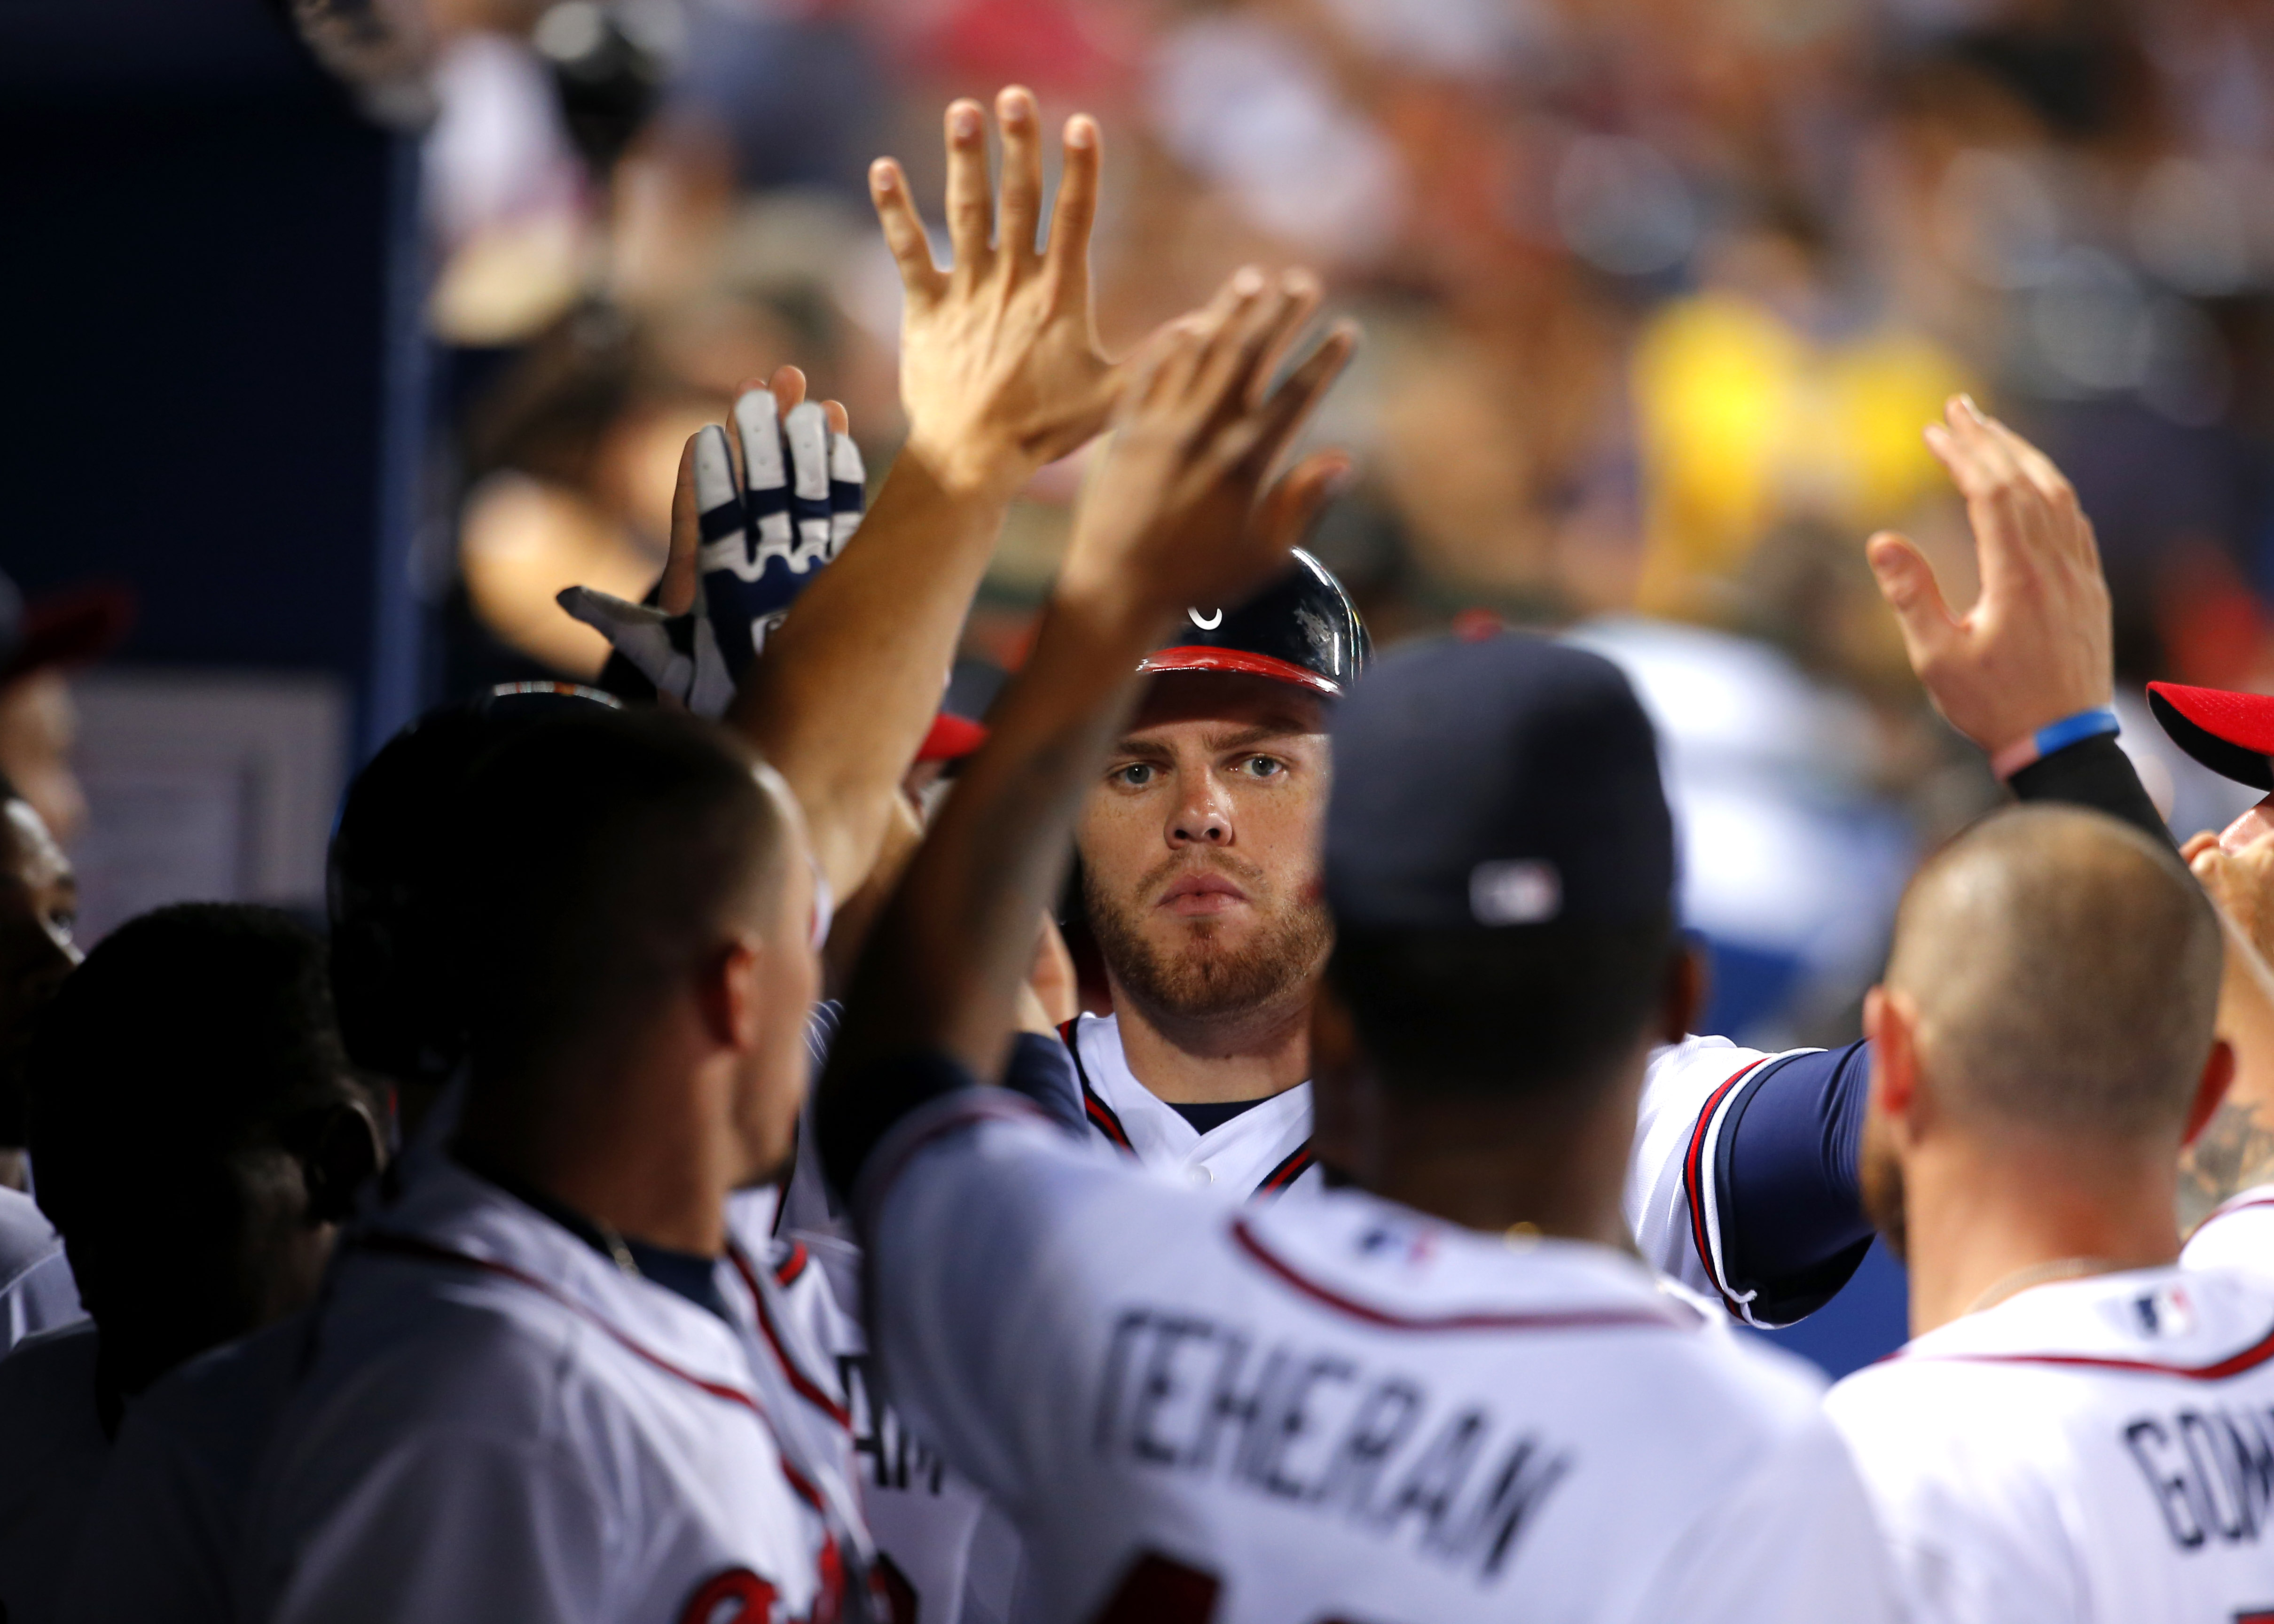 Atlanta Braves Freddie Freeman celebrates with teammates after scoring on a ground out by Todd Cunningham in the sixth inning of a baseball game against the Tampa Bay Rays Wednesday, May 20, 2015, in Atlanta. (AP Photo/Todd Kirkland)